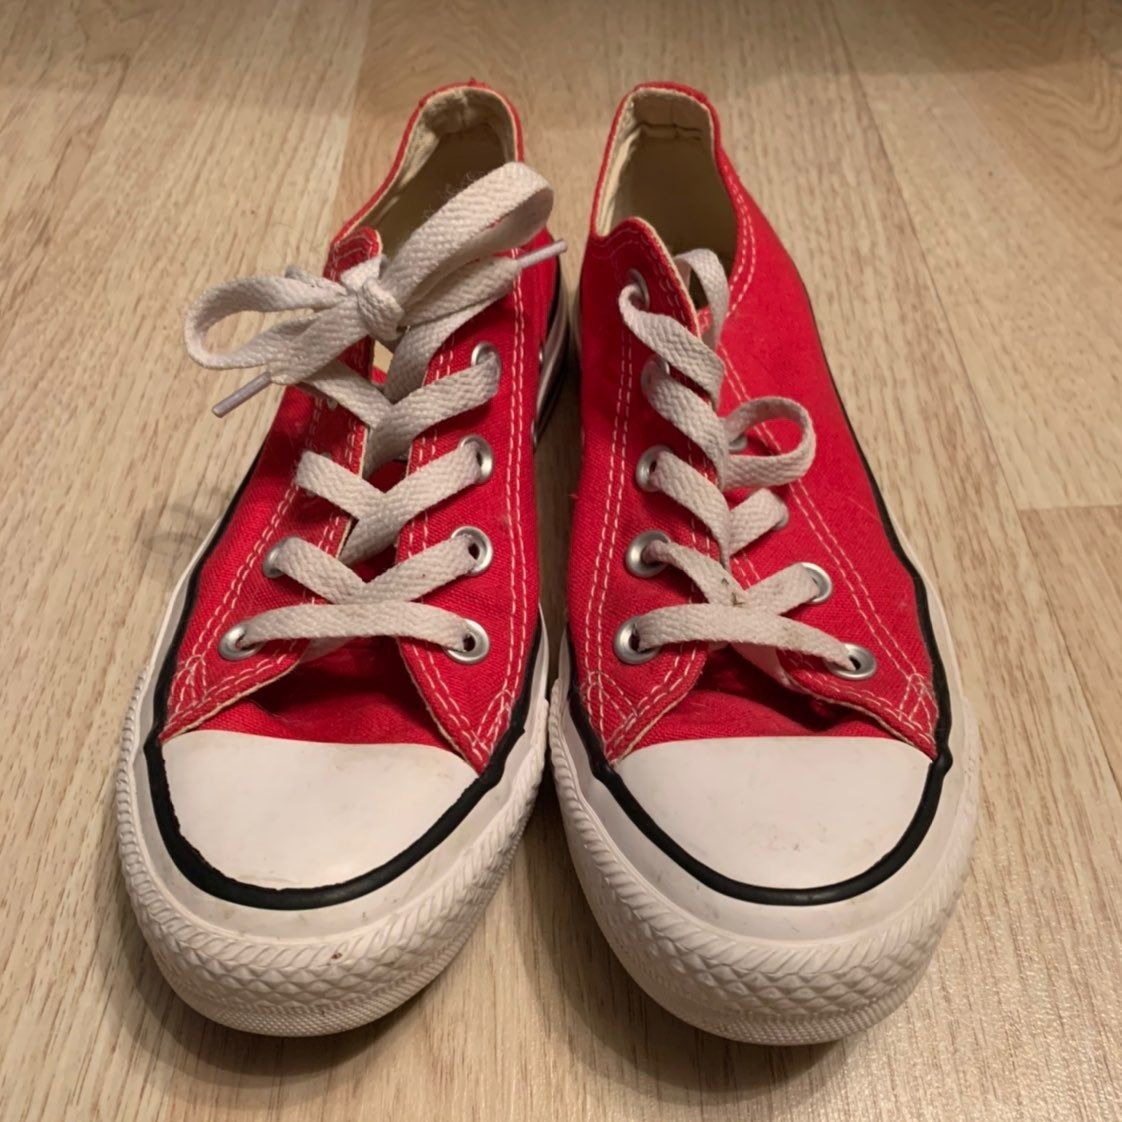 red converse womens size 6